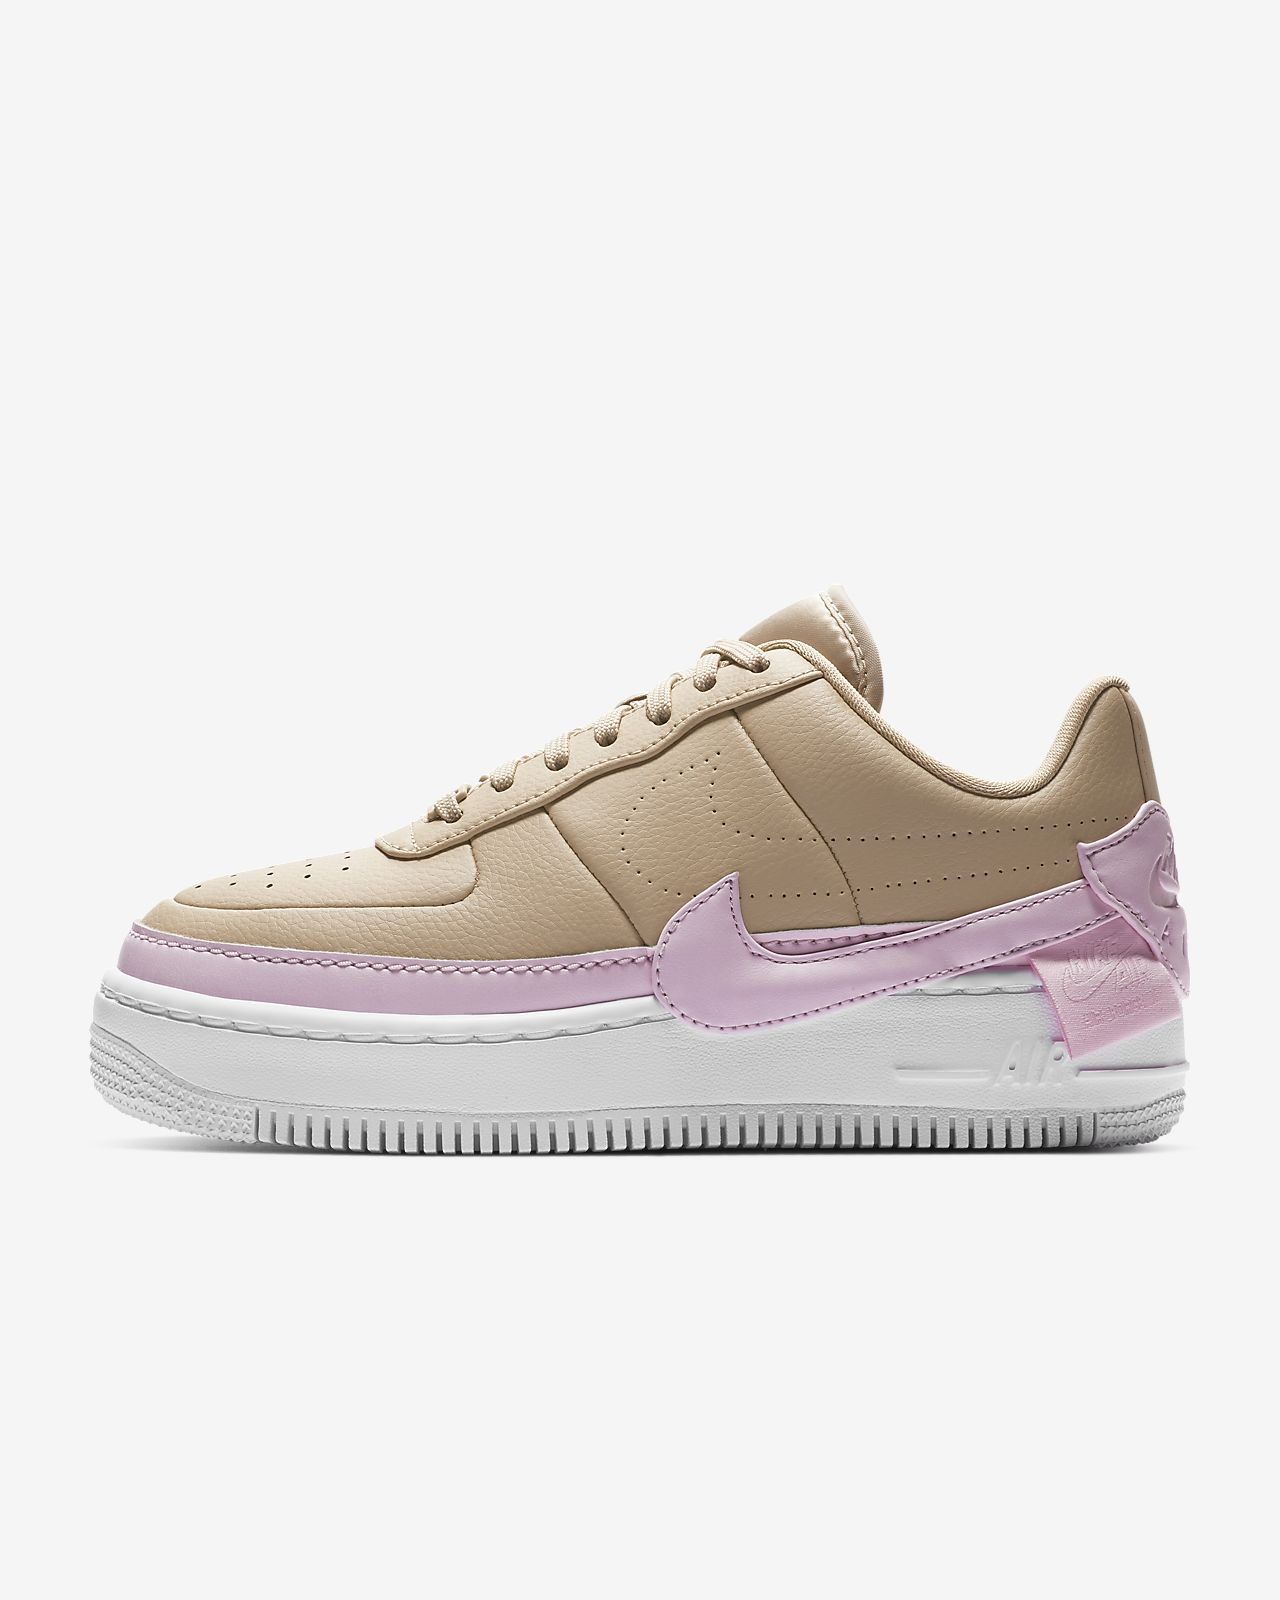 separation shoes fdb67 514b3 ... Calzado para mujer Nike Air Force 1 Jester XX